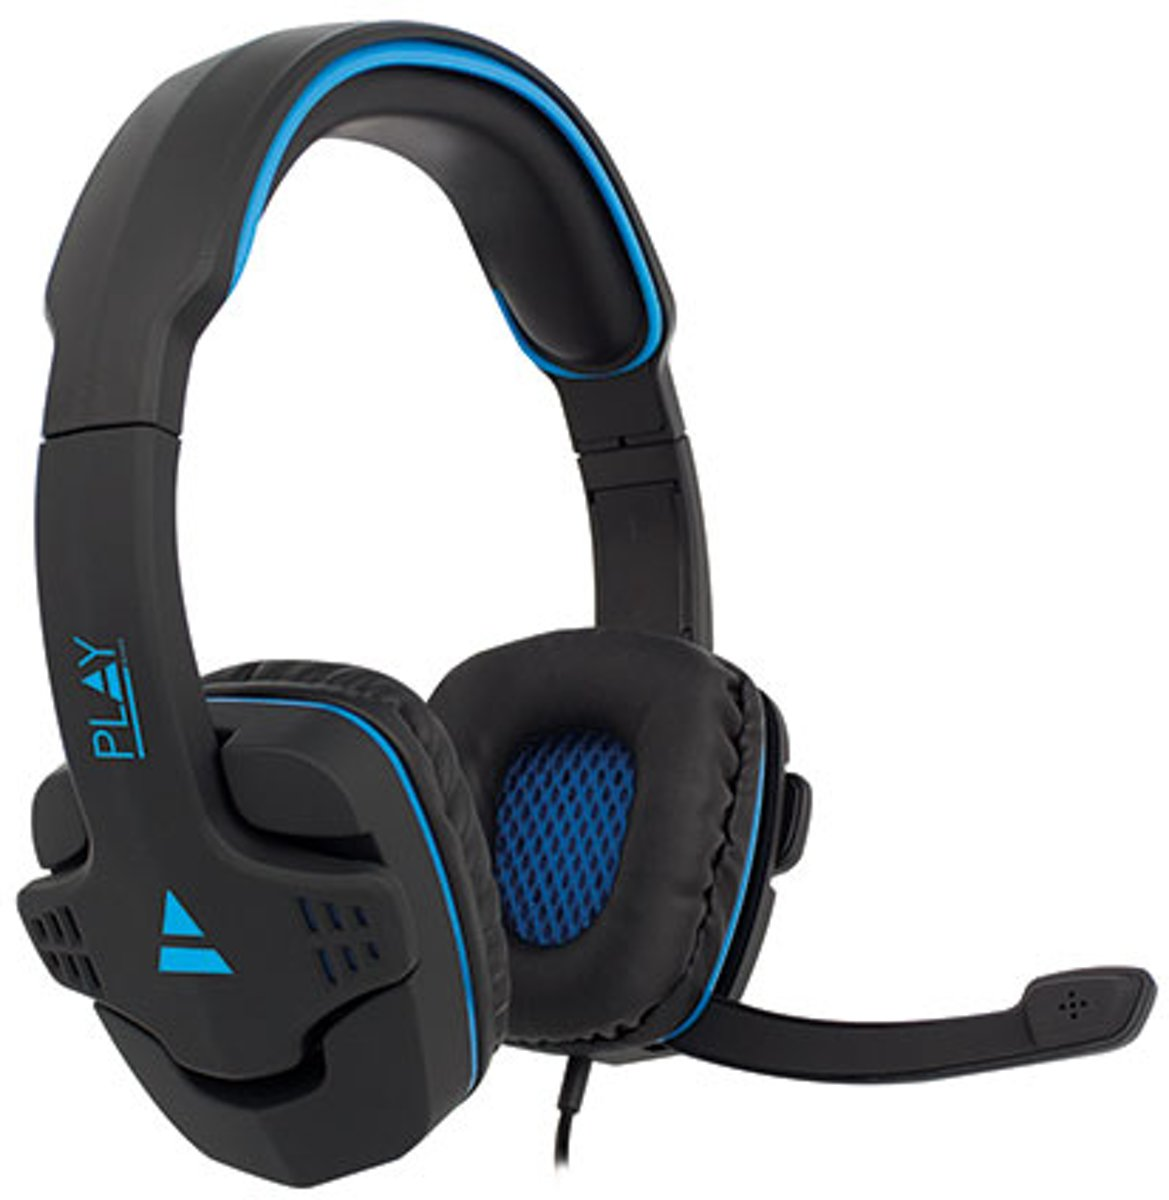 Ewent PL3320 Play Gaming Headset with microphon